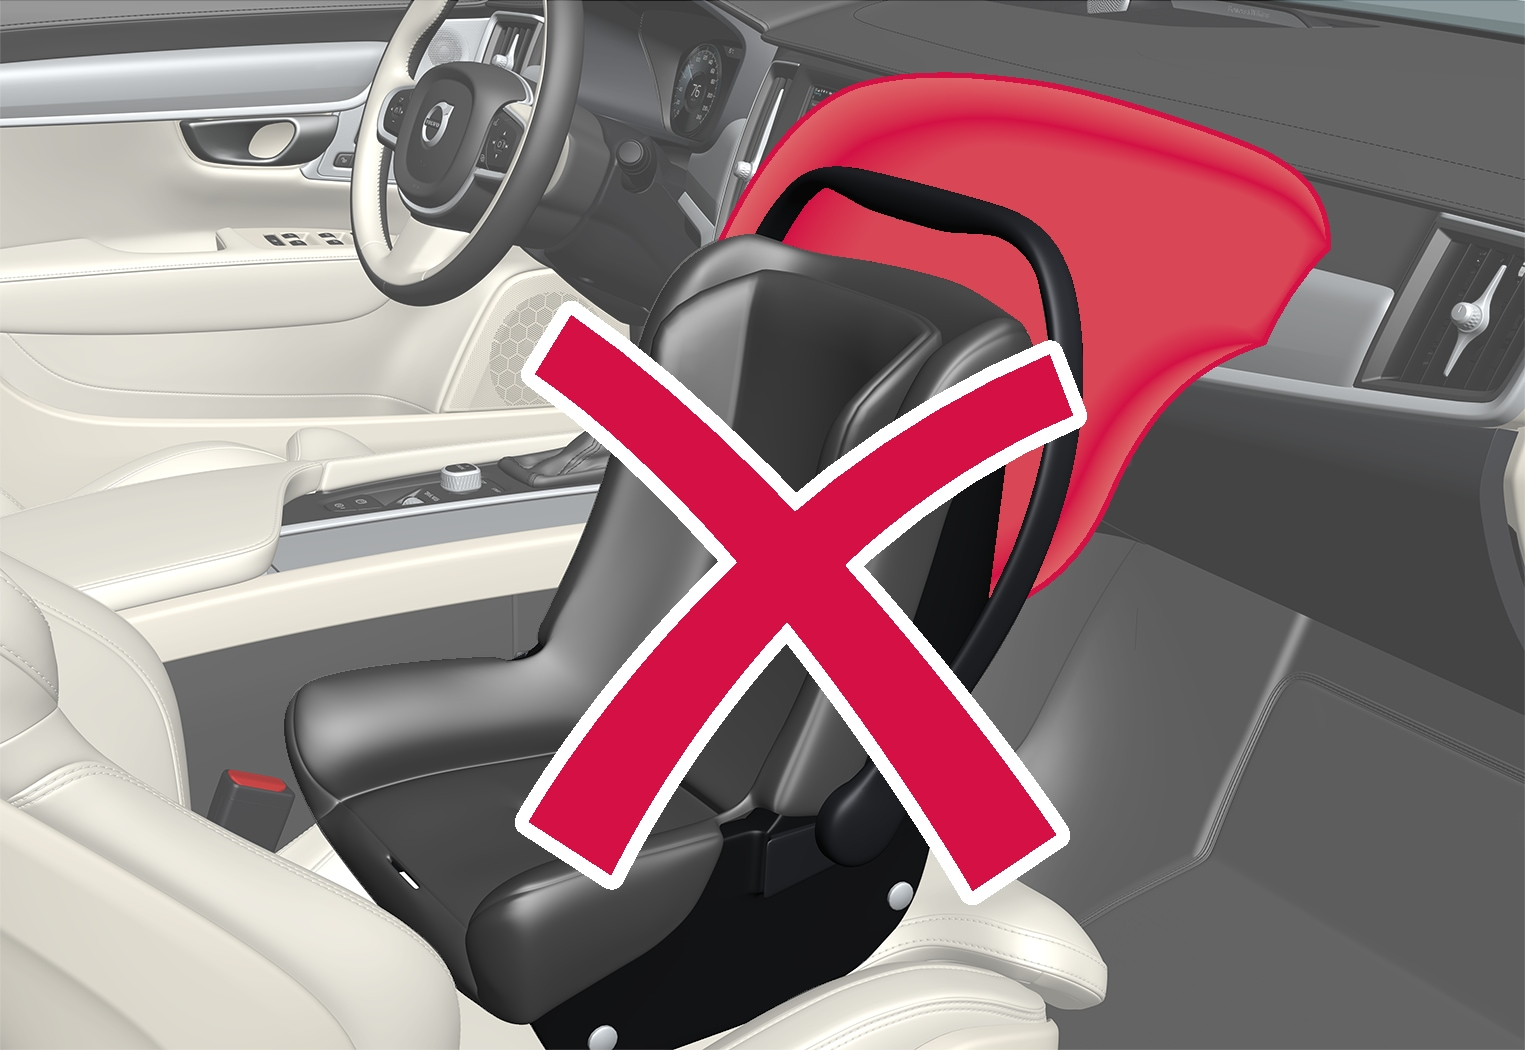 P5-1617-S90/V90–Safety–Child seat and airbag